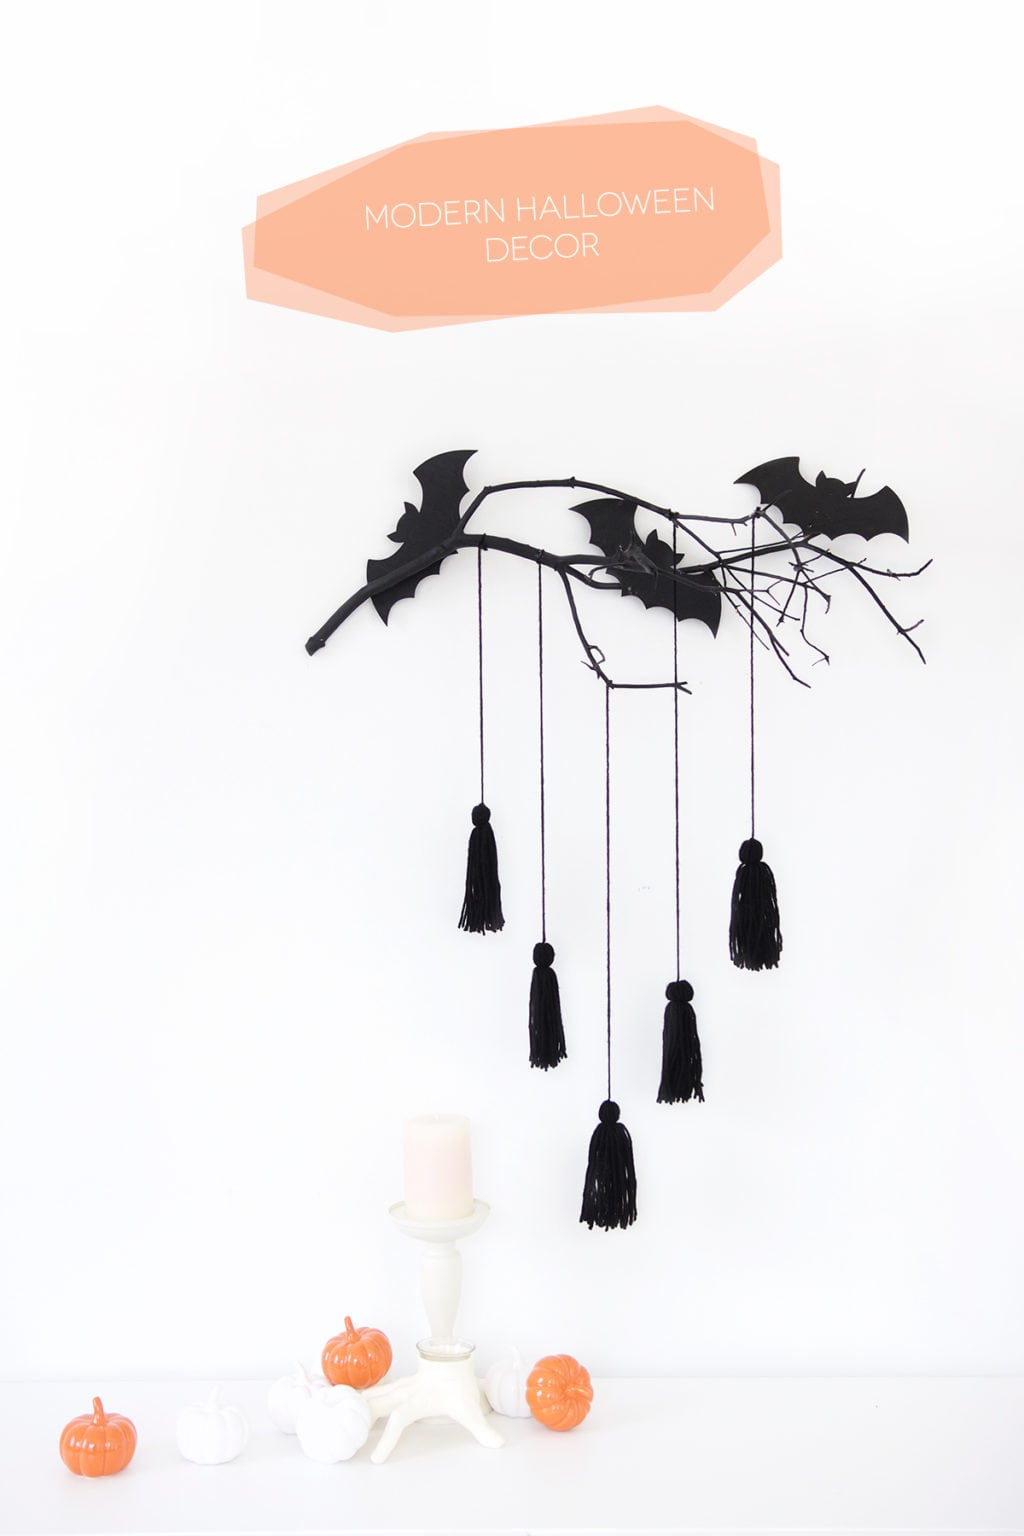 Give Your Spooky Decor A Mod Makeover With This Easy To Make Modern Halloween  Wall Decor